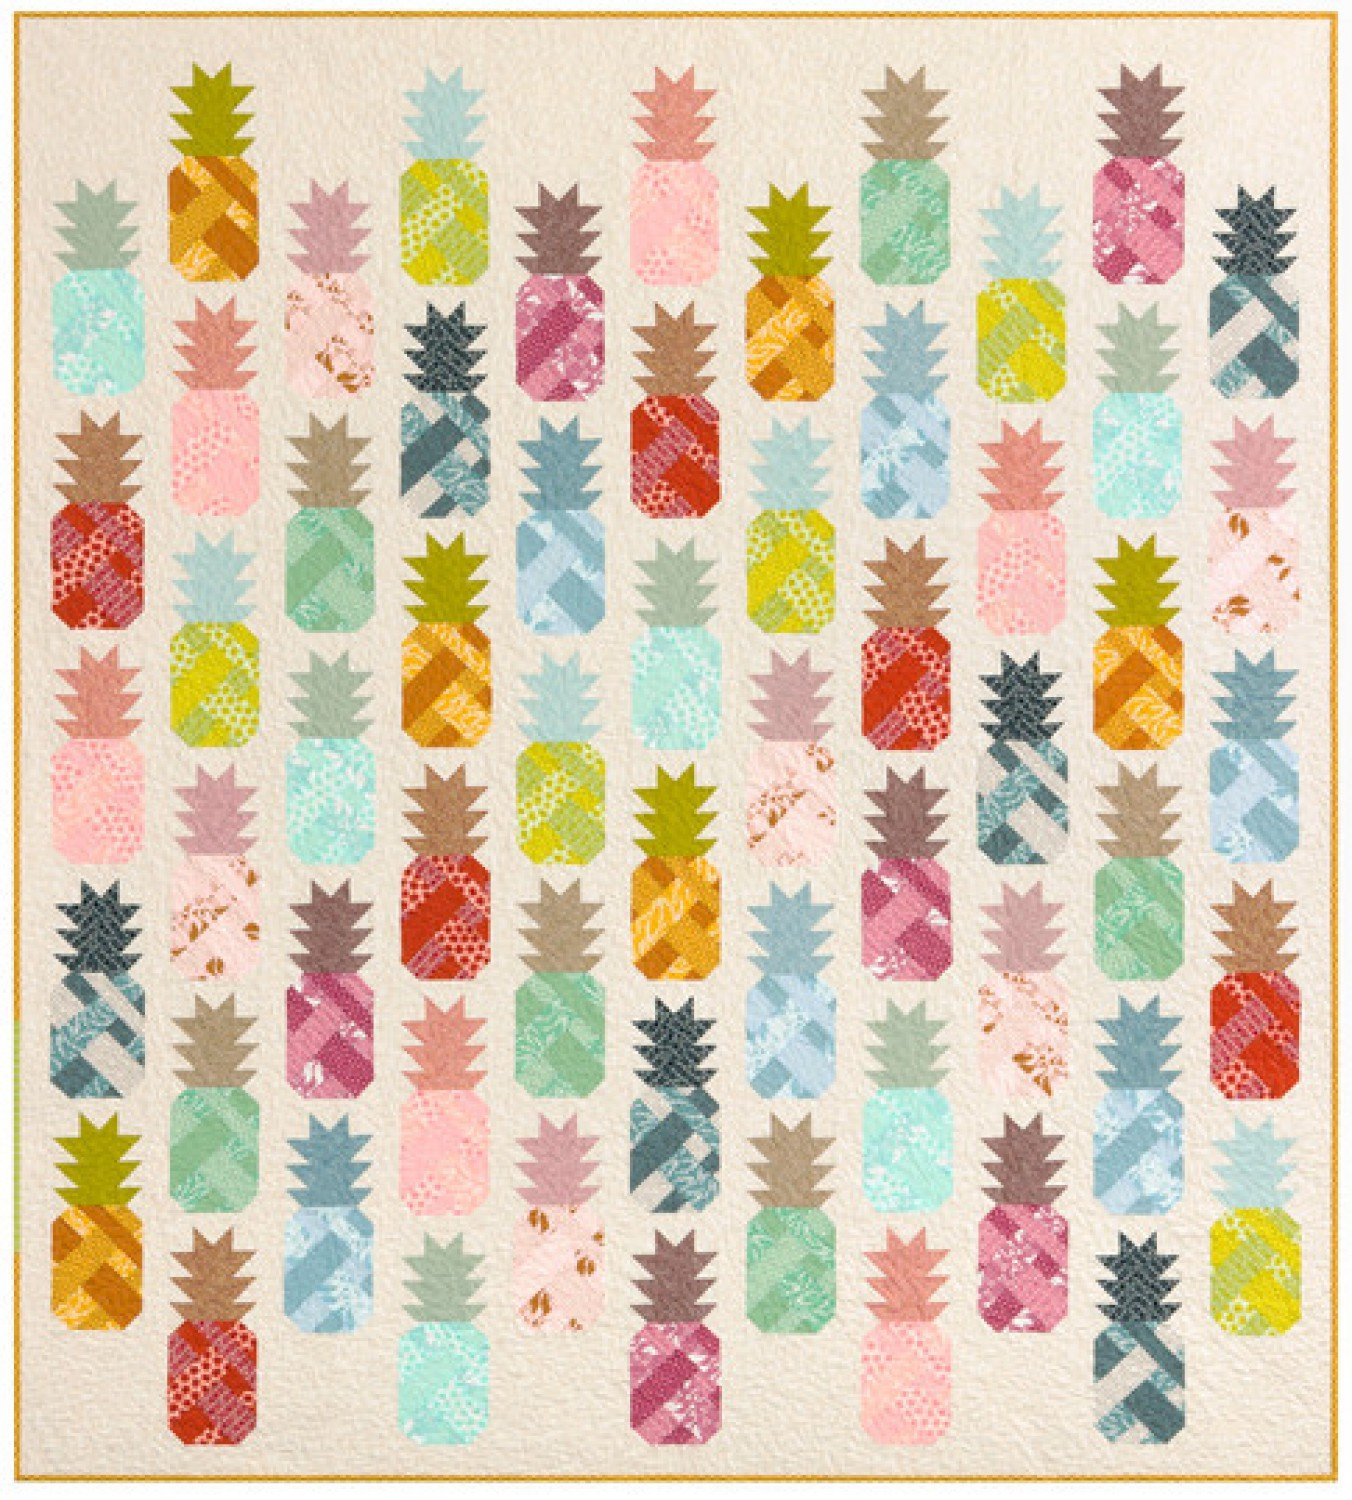 Pineapple Farm Quilt Kit